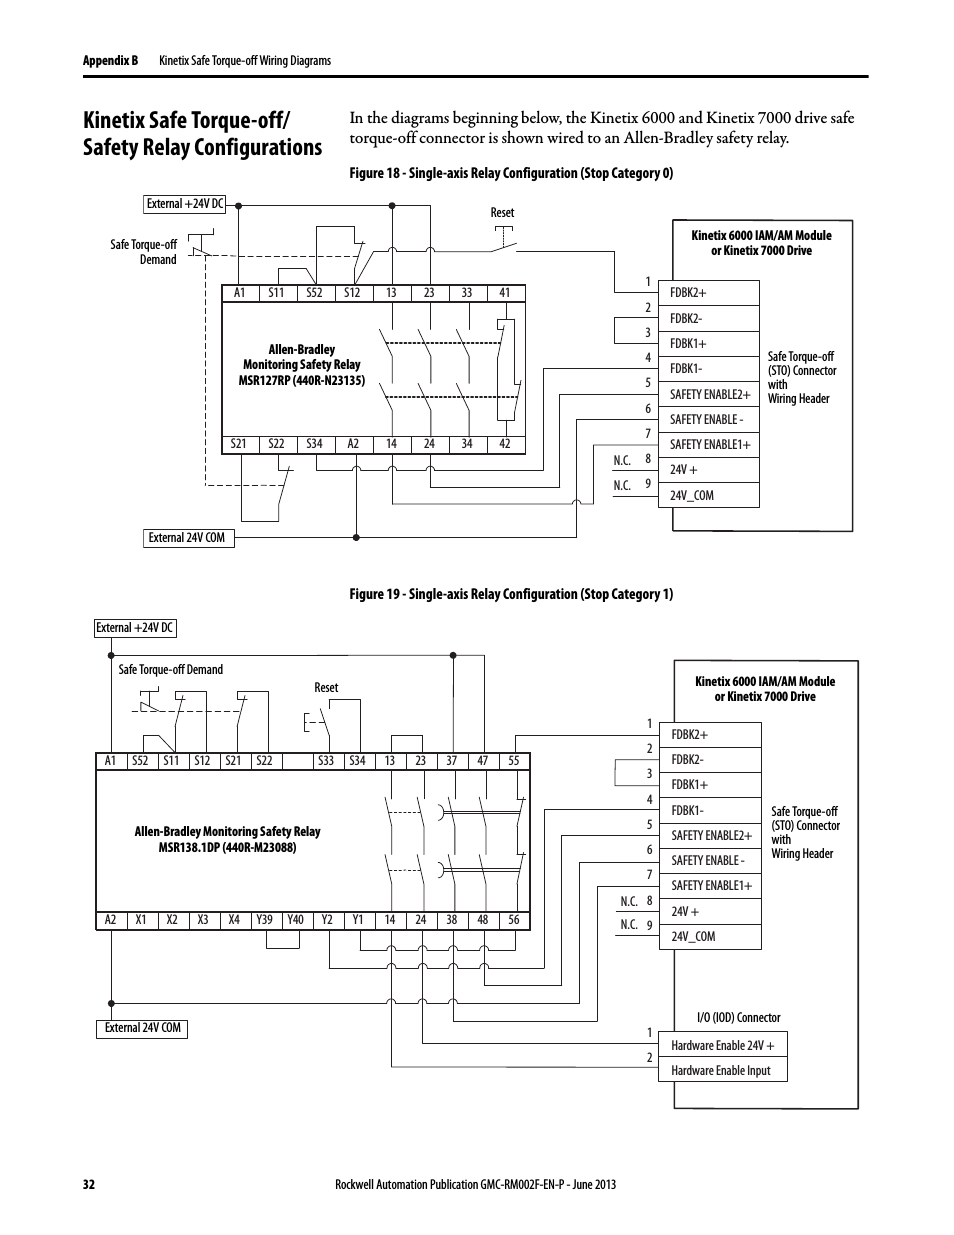 Rockwell Automation 2099-Bmxx-S Kinetix Safe Torque-Off Feature - Allen Bradley Safety Relay Wiring Diagram